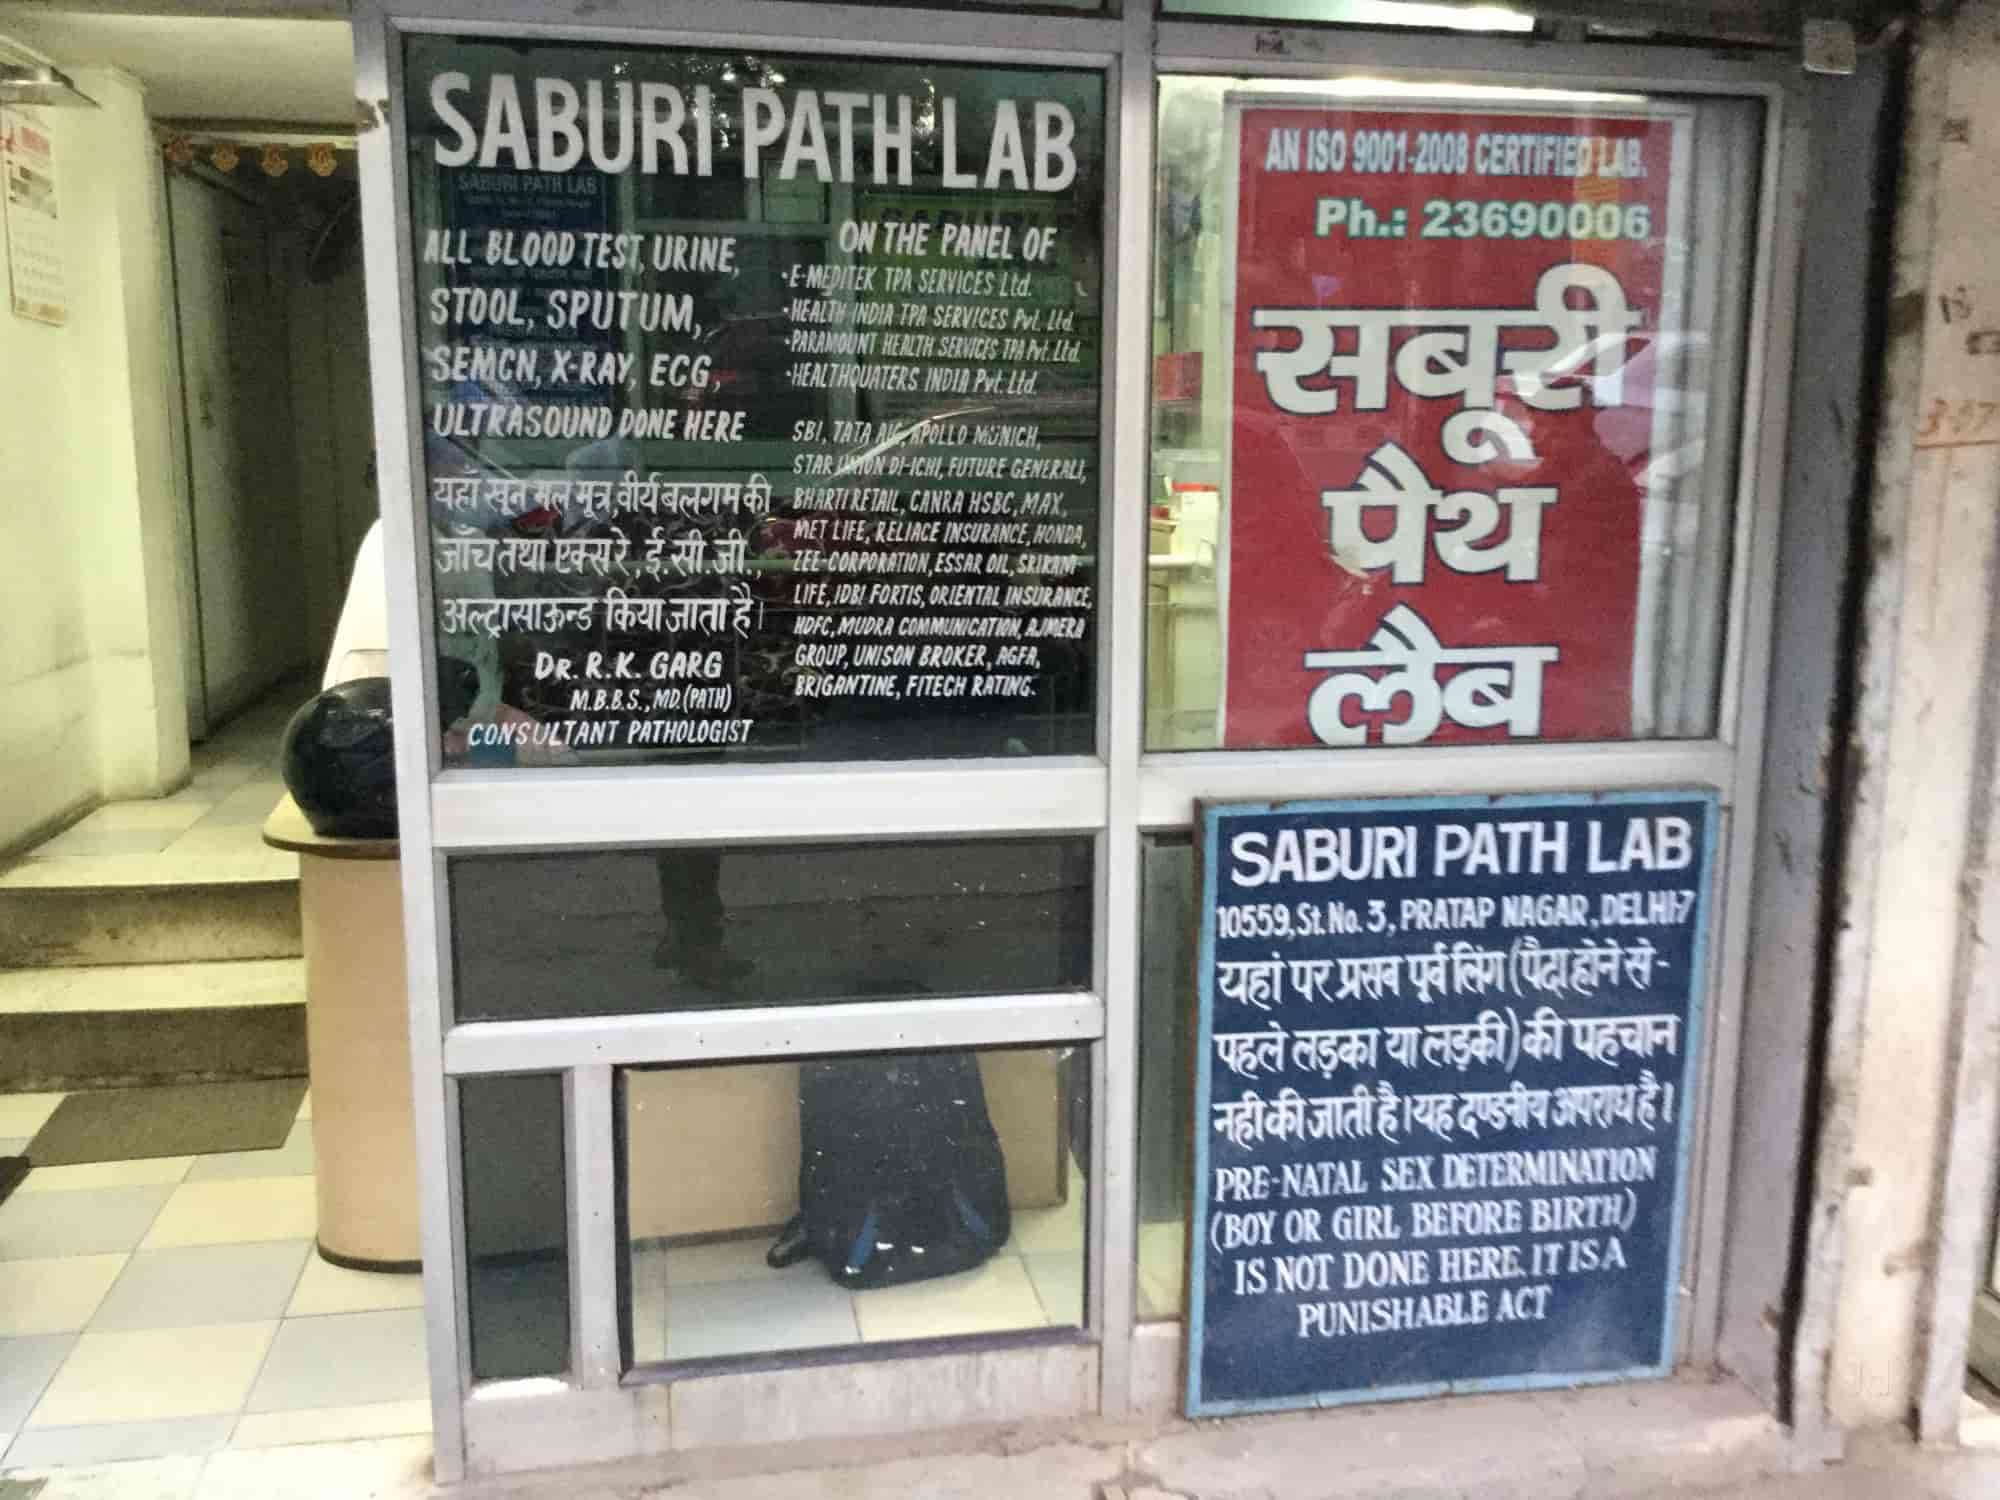 Saburi Path Lab, Pratap Nagar - Pathology Labs in Delhi